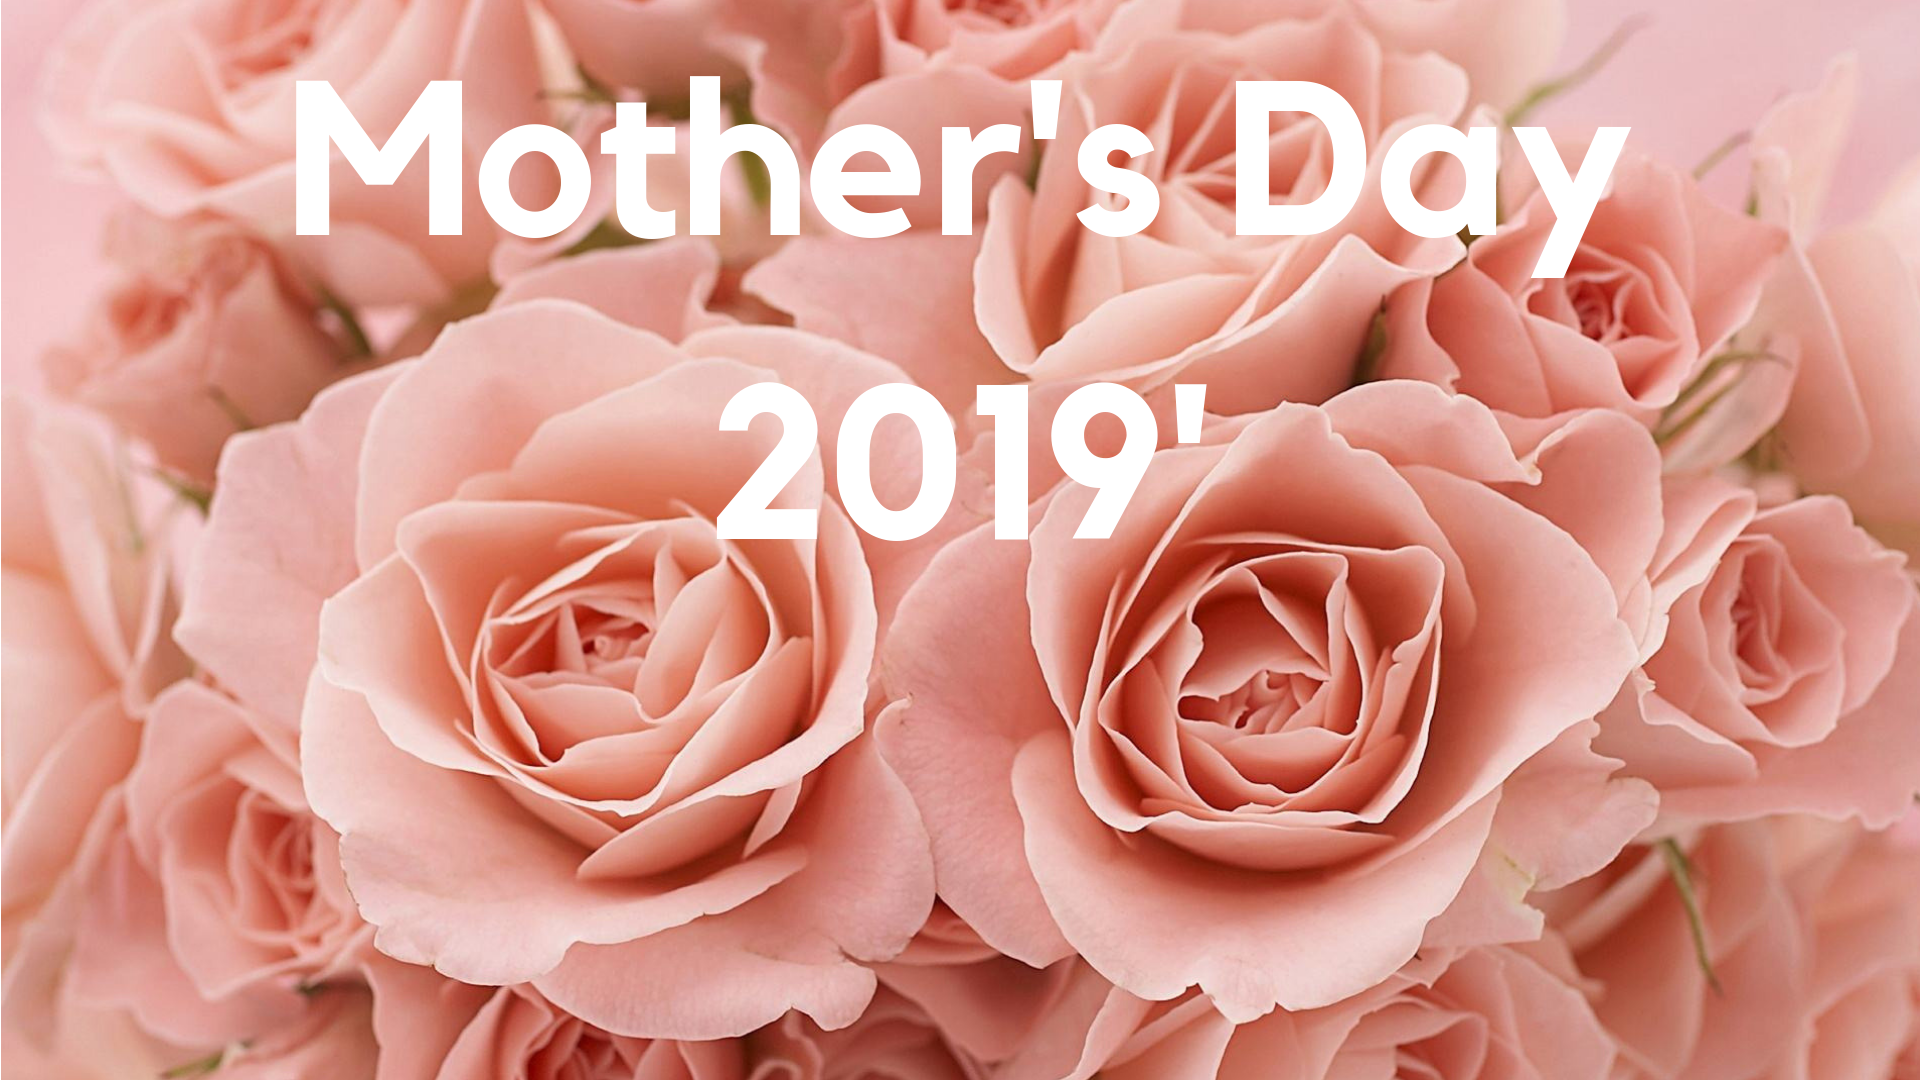 Book Now! - View the Mother's Day Menu HereLimited 3-course A la carte menu - Bookings Essential 9561 9997